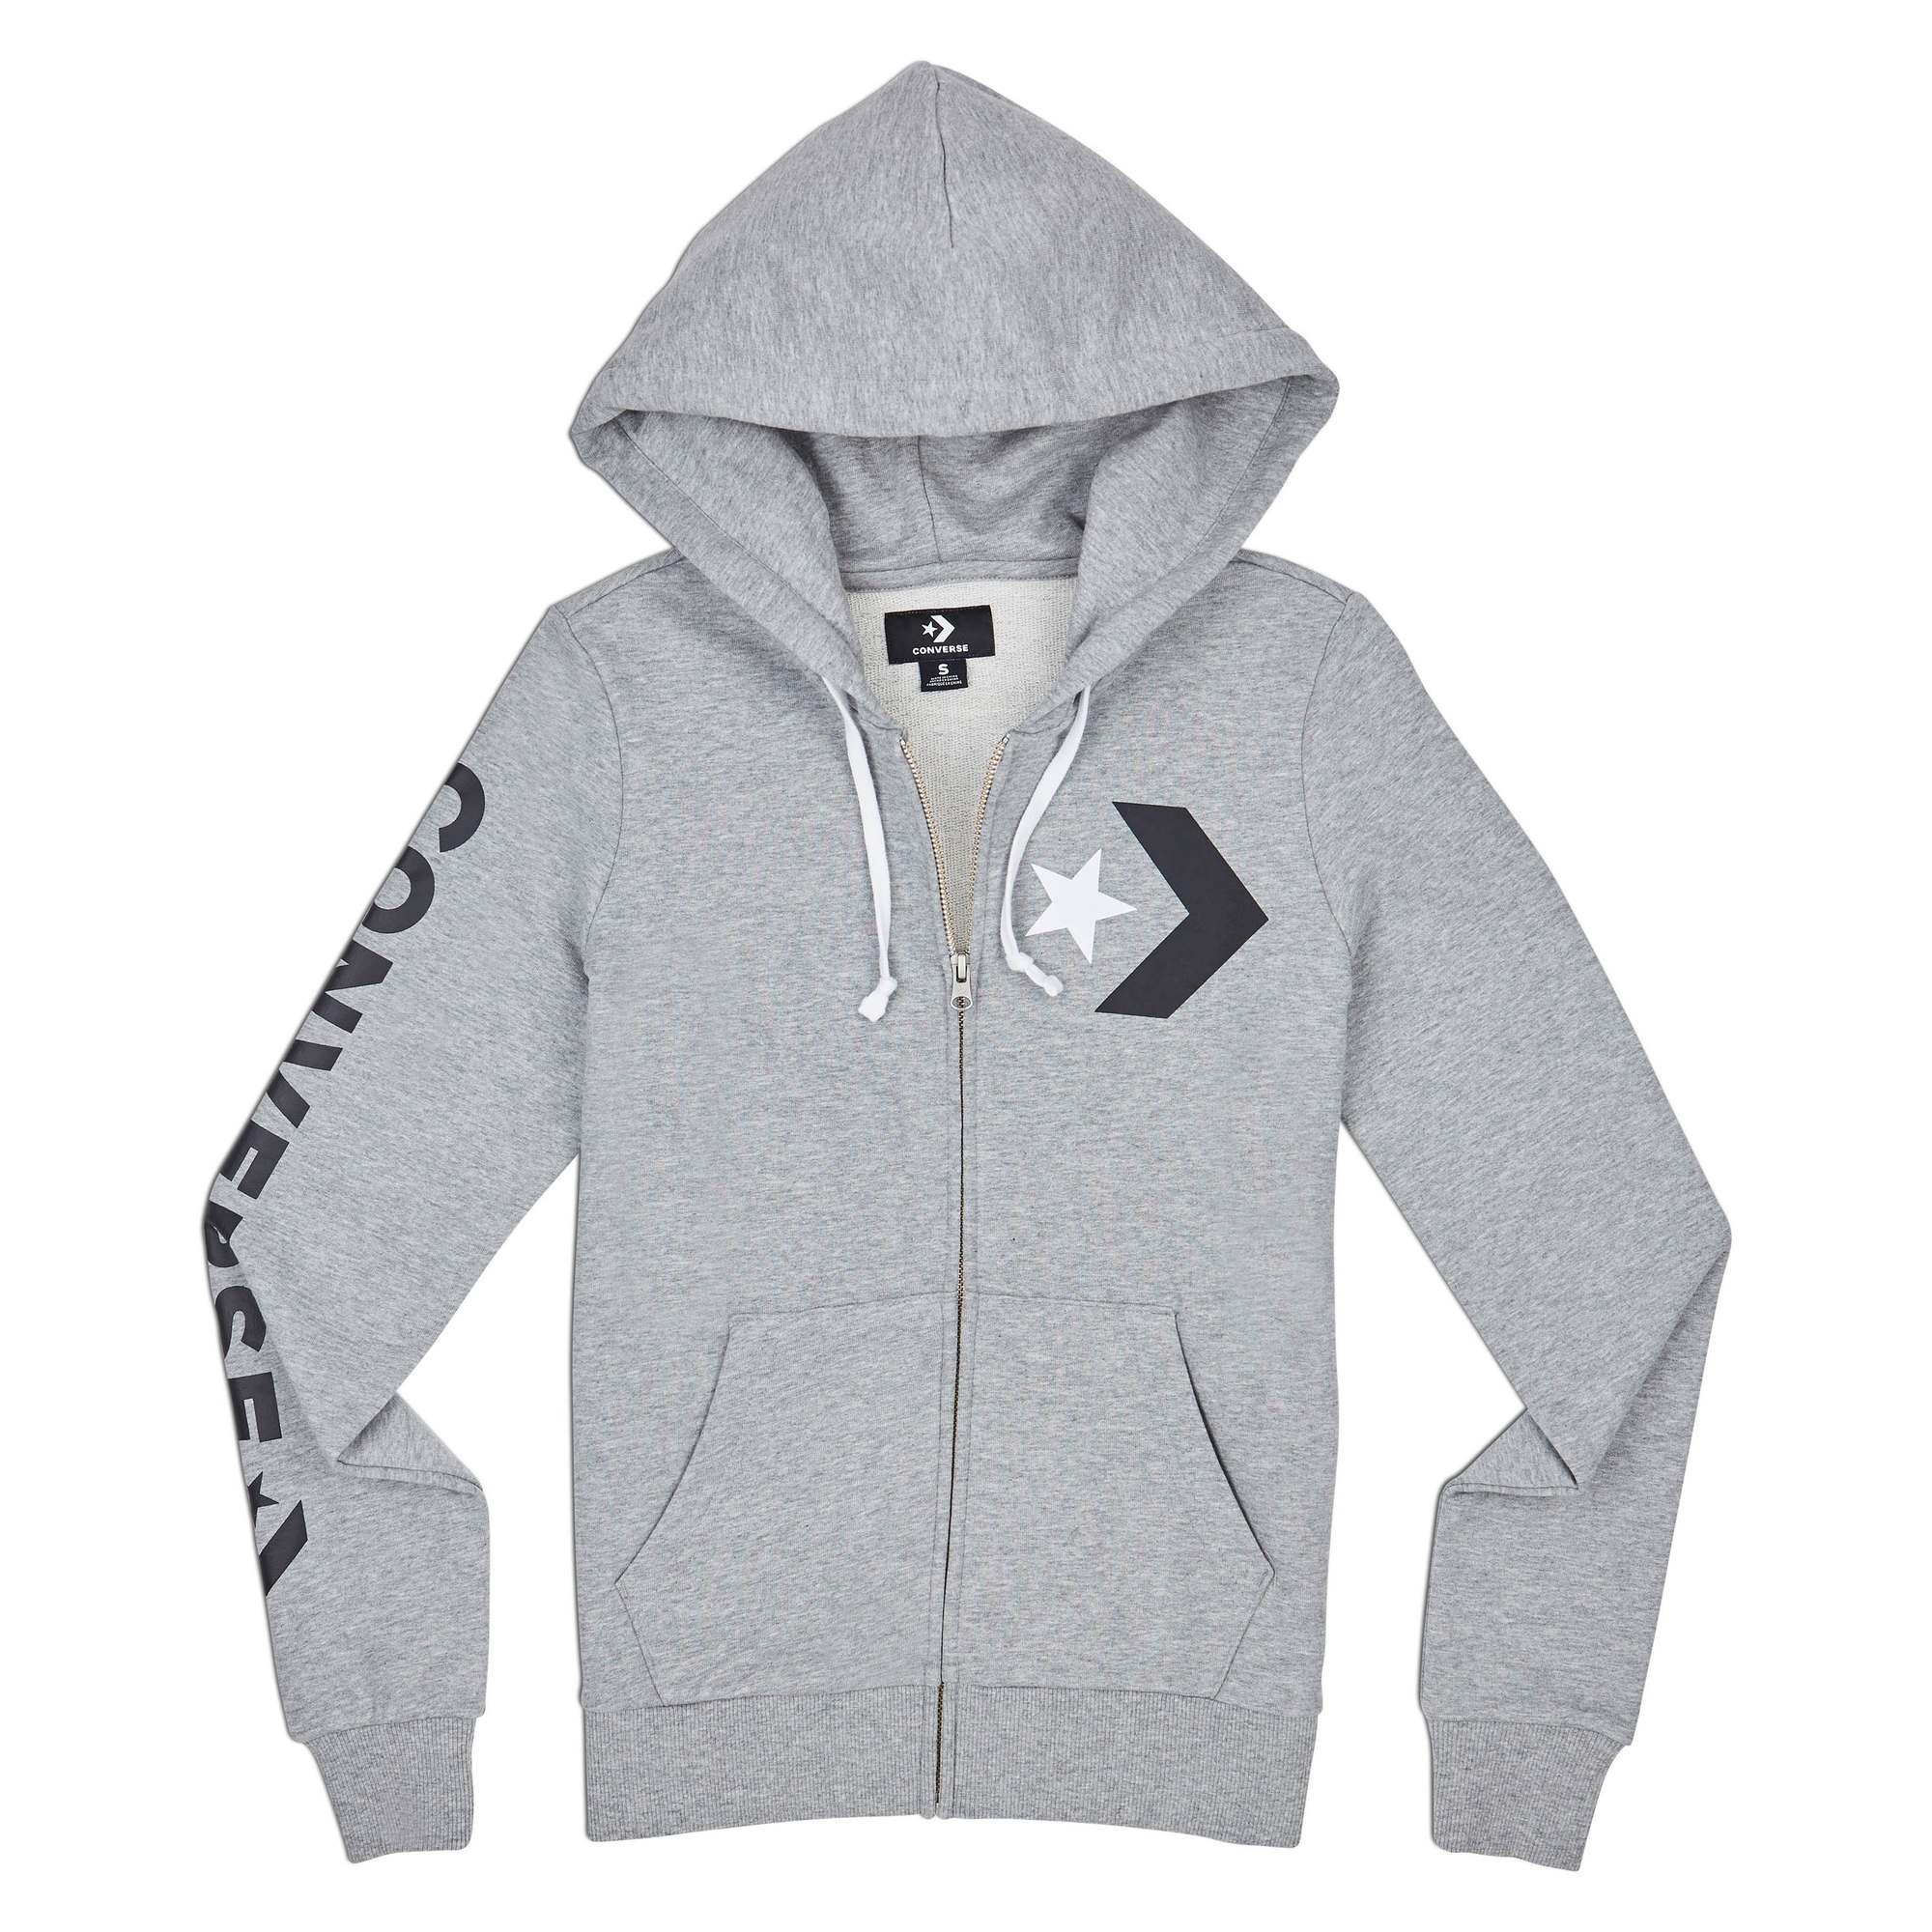 a836a198893941 CONVERSE STAR CHEVRON FULL-ZIP HOODIE - FT - VINTAGE GREY HEATHER - 622038  - 10007111-A02